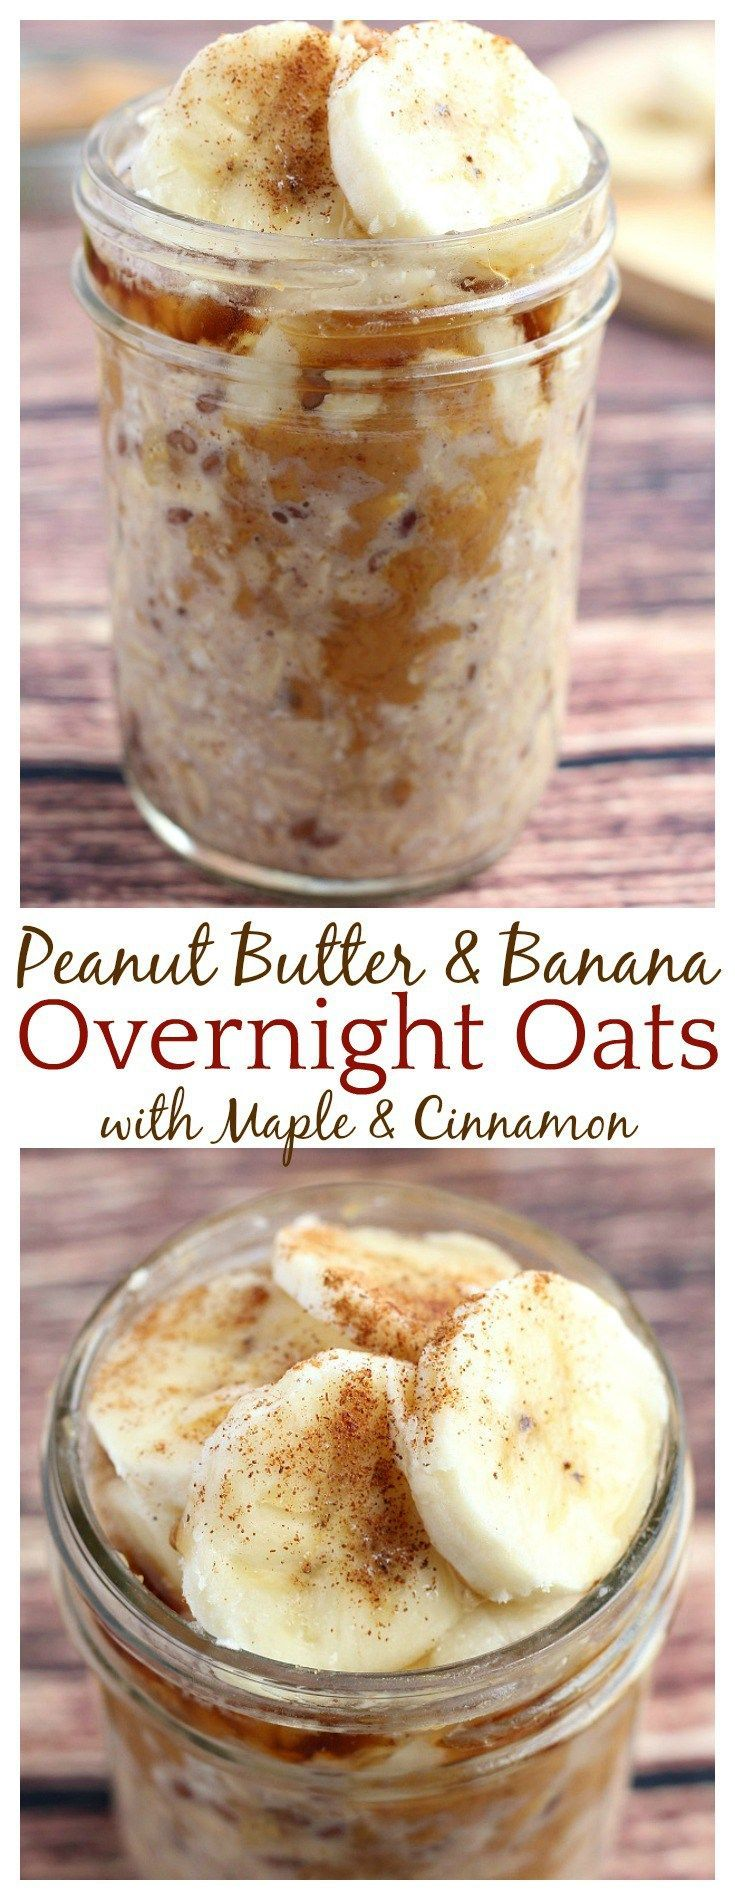 Mornings are very busy and these Peanut Butter and Banana Overnight Oats have definitely simplified them! I love the combination of peanut butter and banana especially when maple syrup and cinnamon are added! This is a super easy recipe for a quick, delicious breakfast!>>> >>> >>> We love this at Little Mashies headquarters littlemashies.com